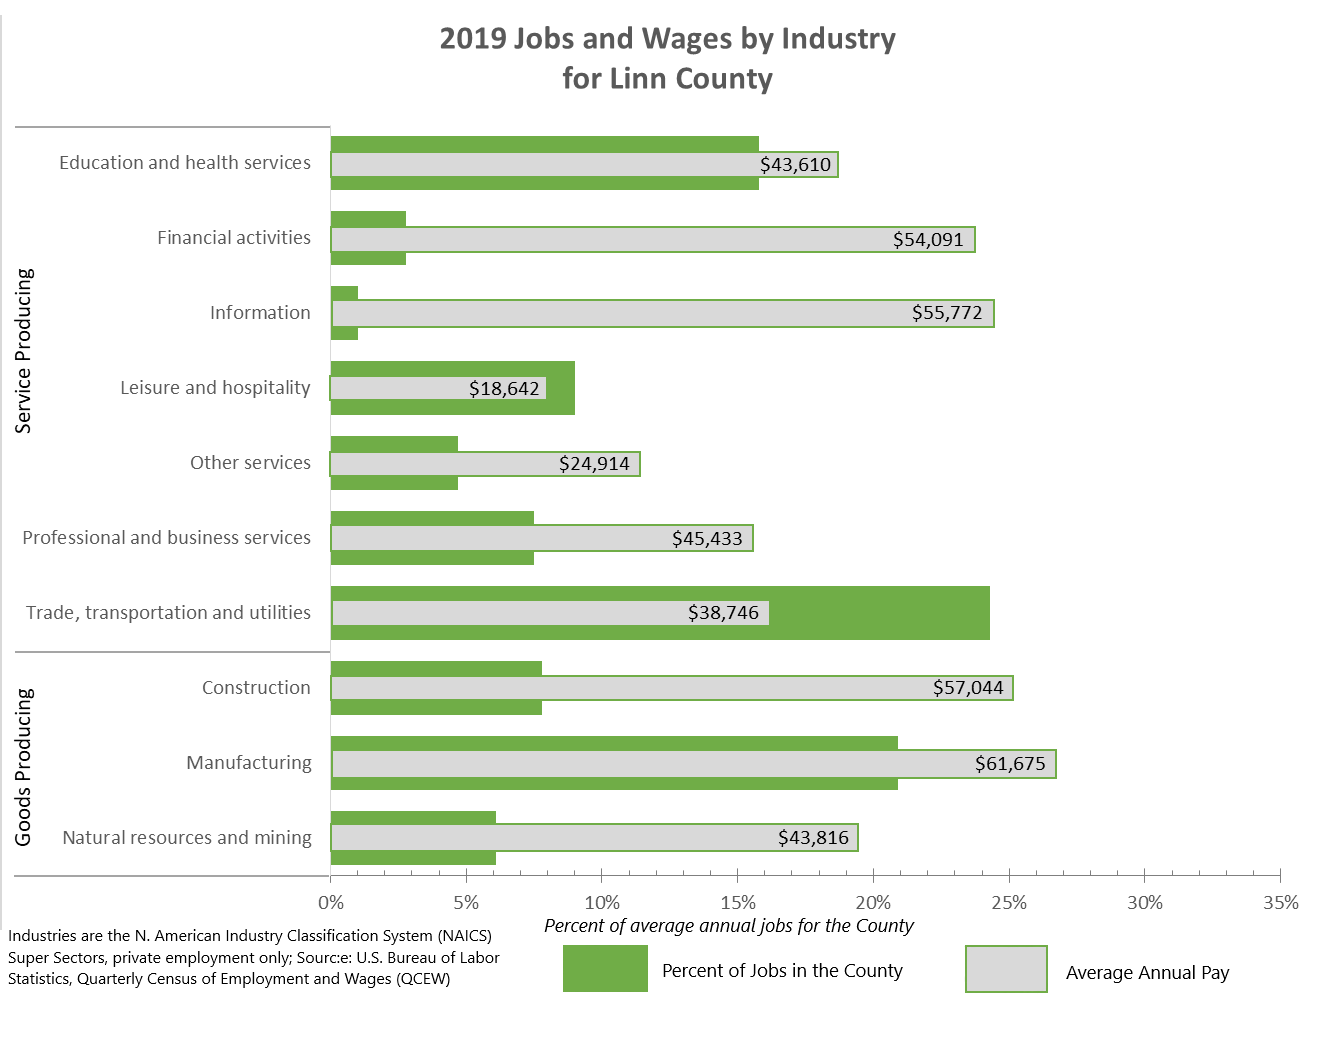 2019 Jobs and Wages by Industry for Linn County